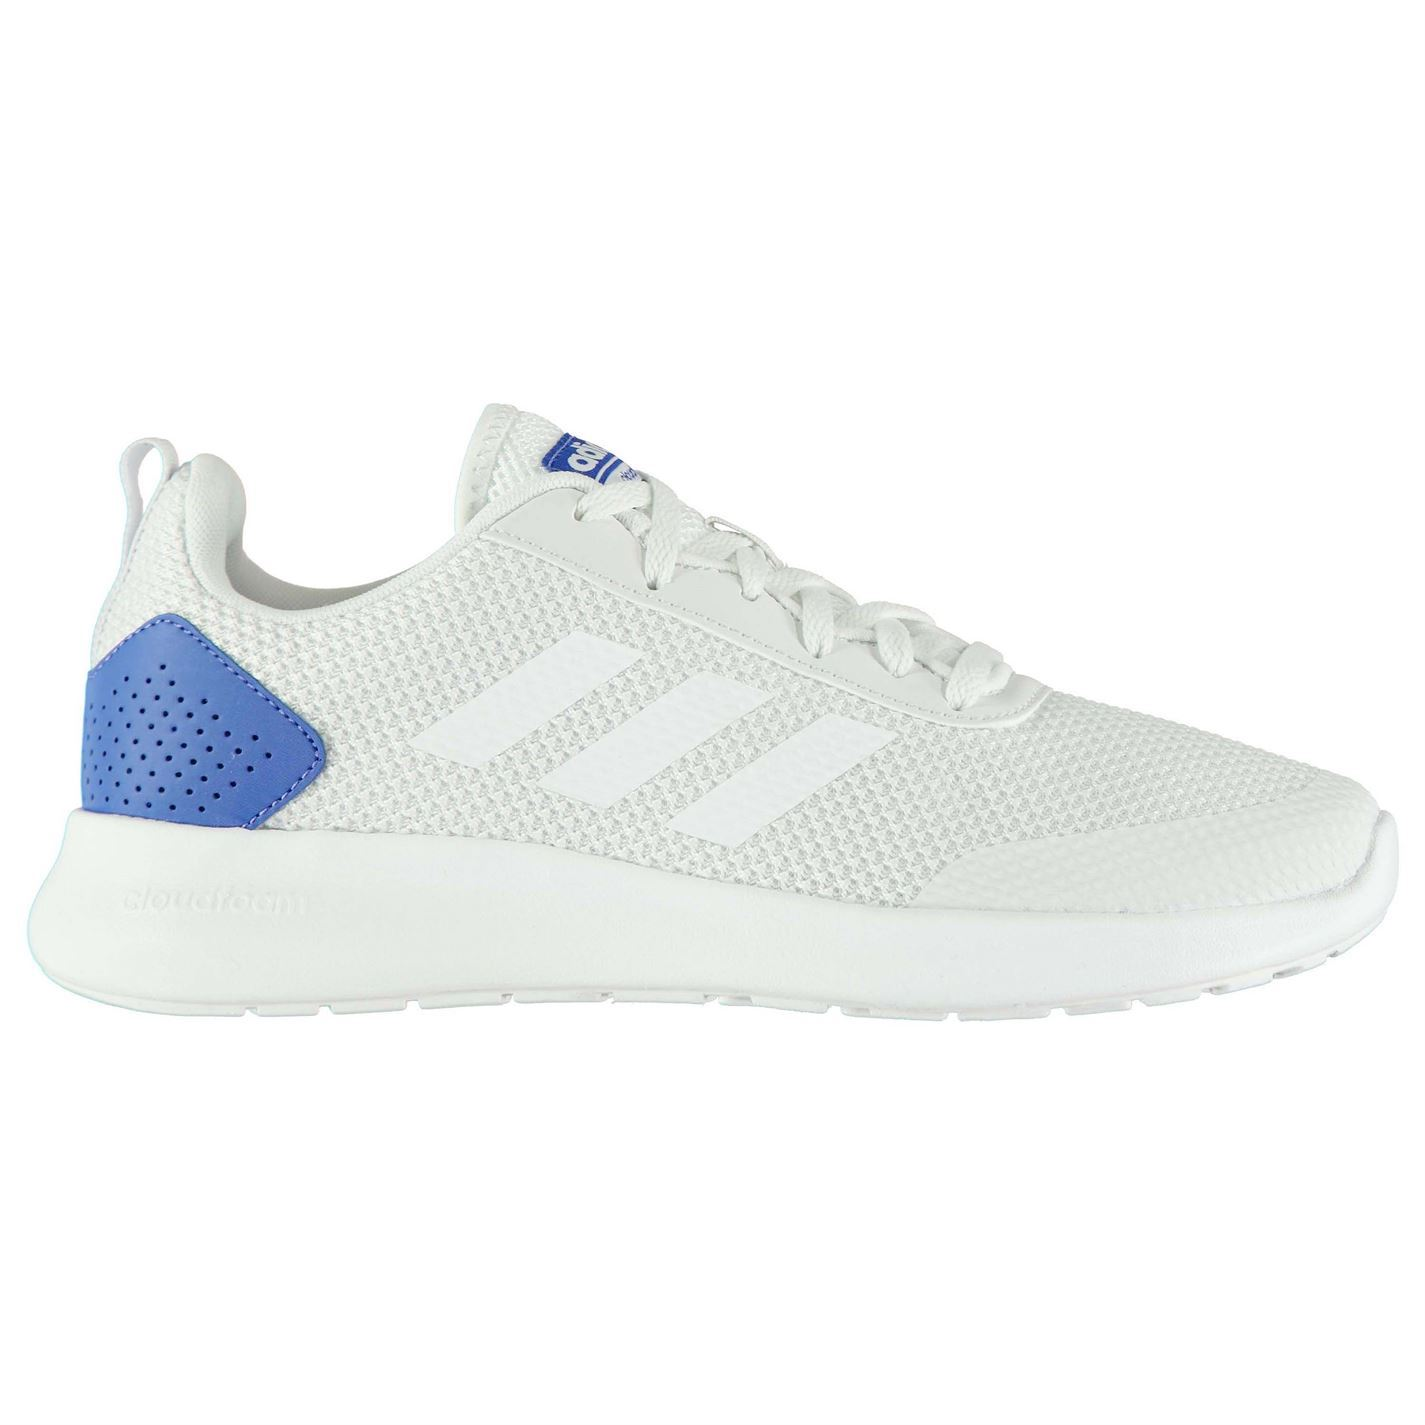 Image is loading adidas-Mens-Cloudfoam-Element-Racer-Trainers-Runners-Lace-